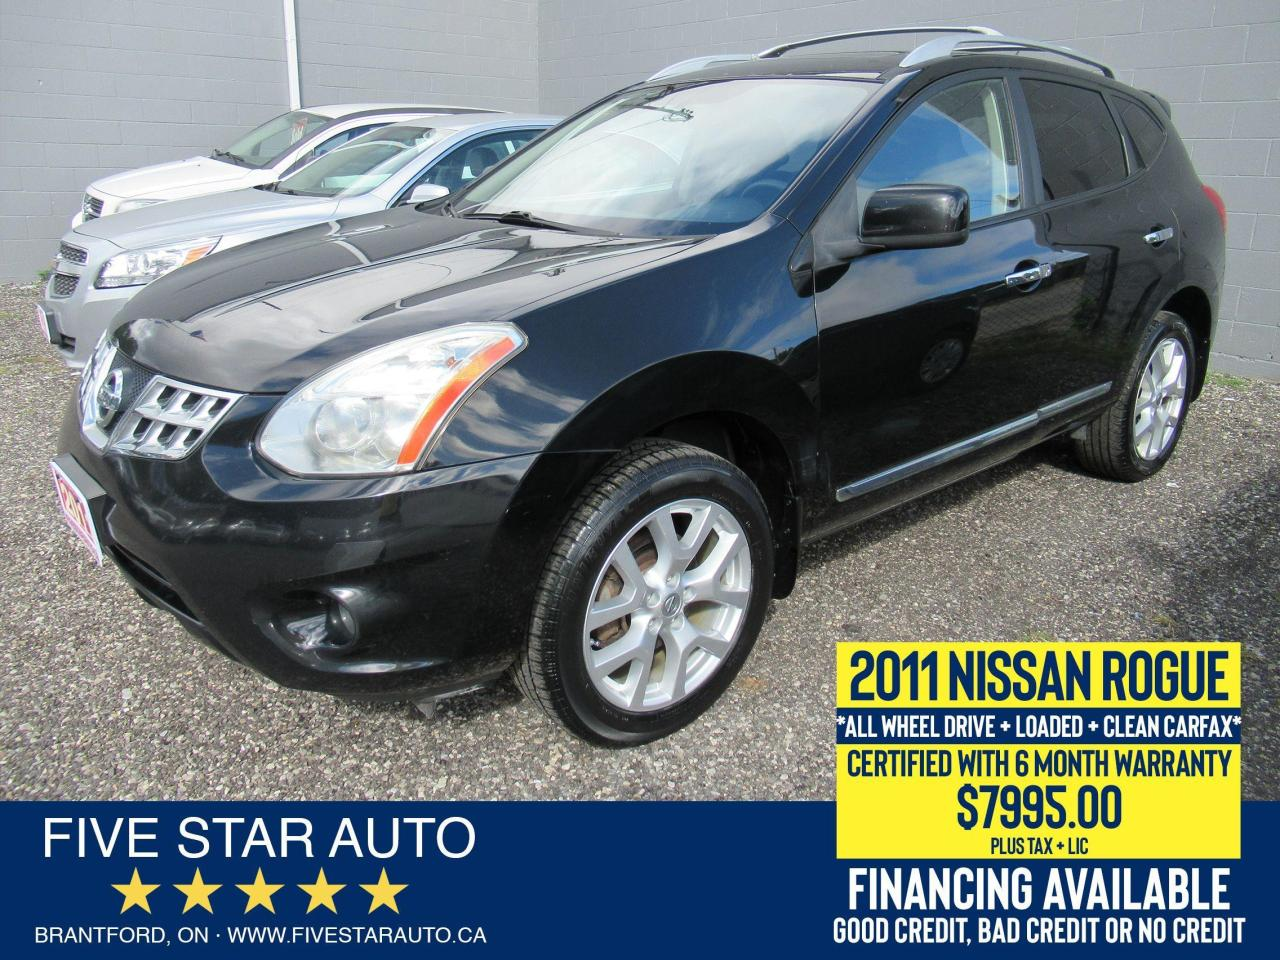 2011 Nissan Rogue SV AWD *Clean Carfax* Certified w/ 6 Mth Warranty